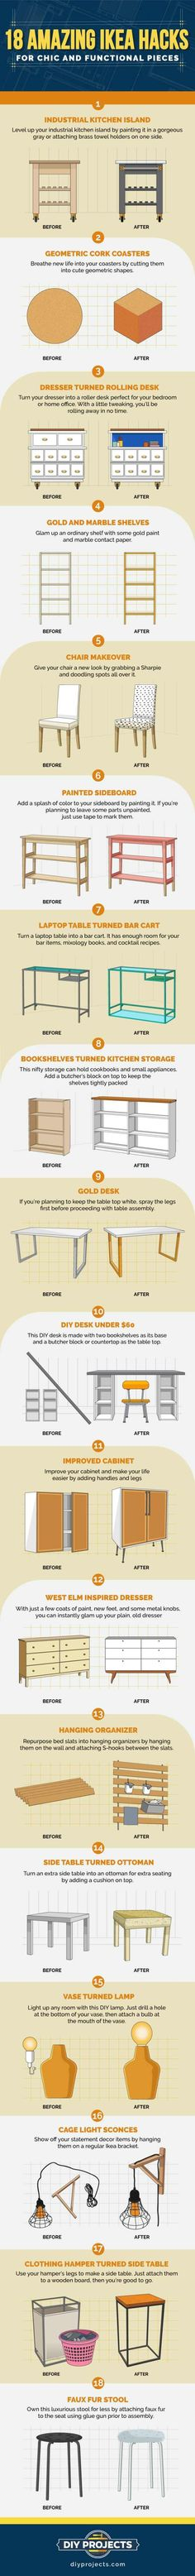 I don't know about you, but these Ikea hacks have definitely given me more reasons to hit the much-loved furniture store. There are just so many possibilities you can do with their pieces. Their products are practically blank canvases just waiting to be given a touch of personality.